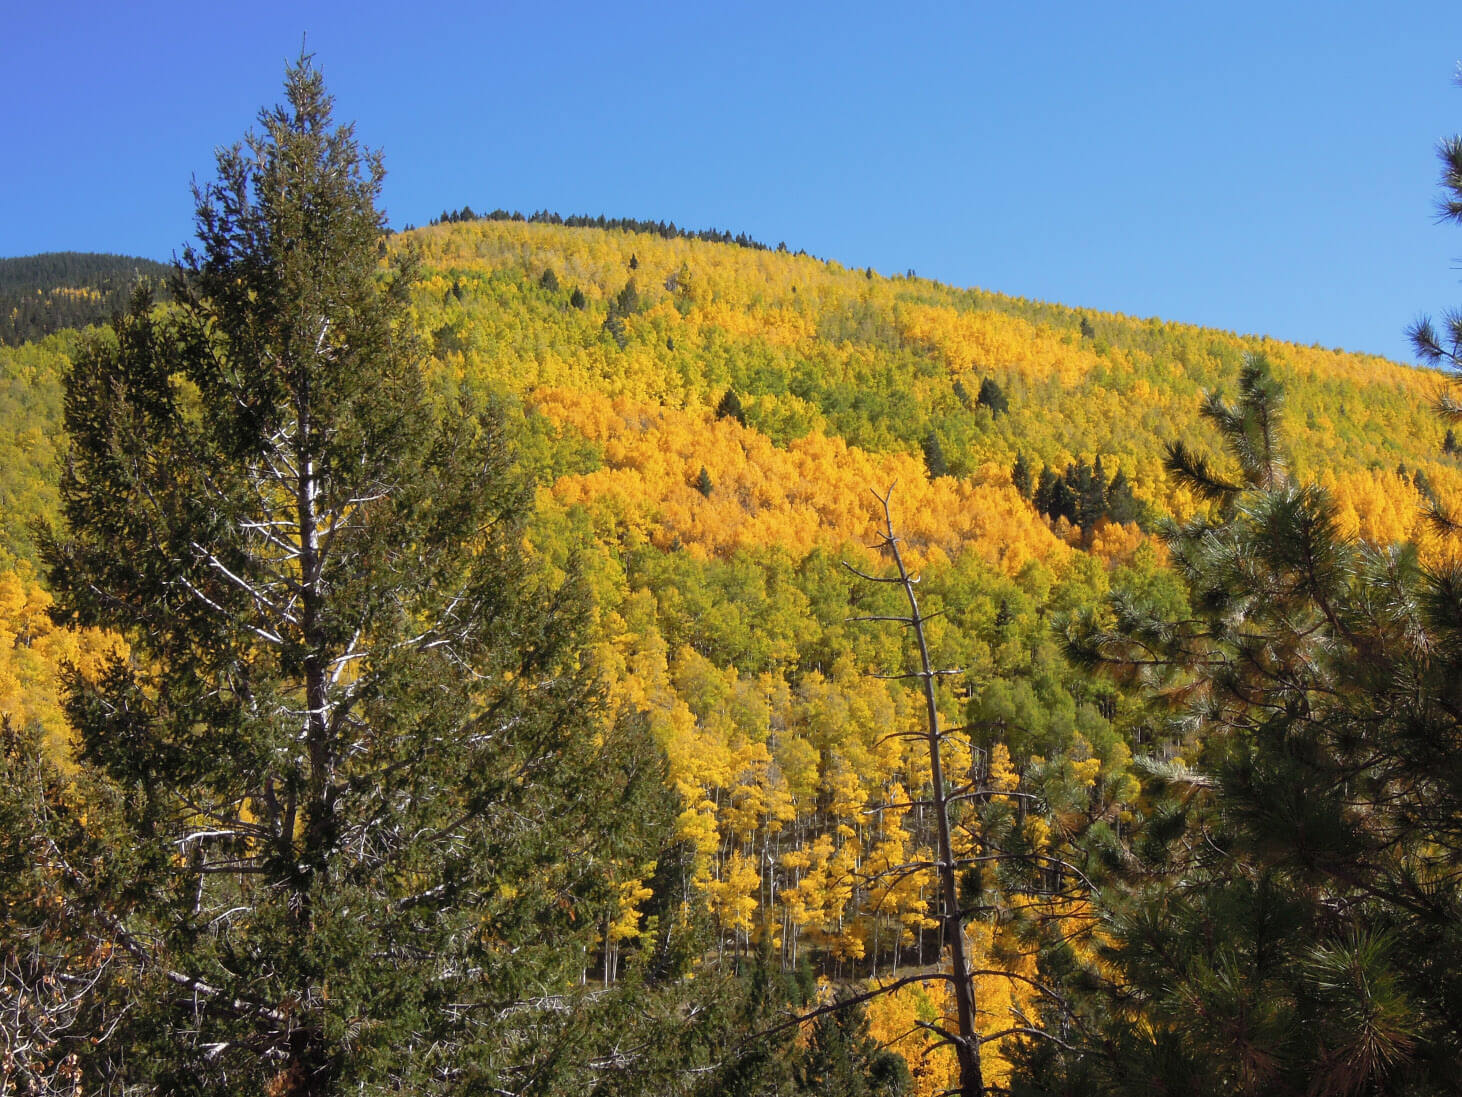 Hiking Trails in Santa Fe, New Mexico